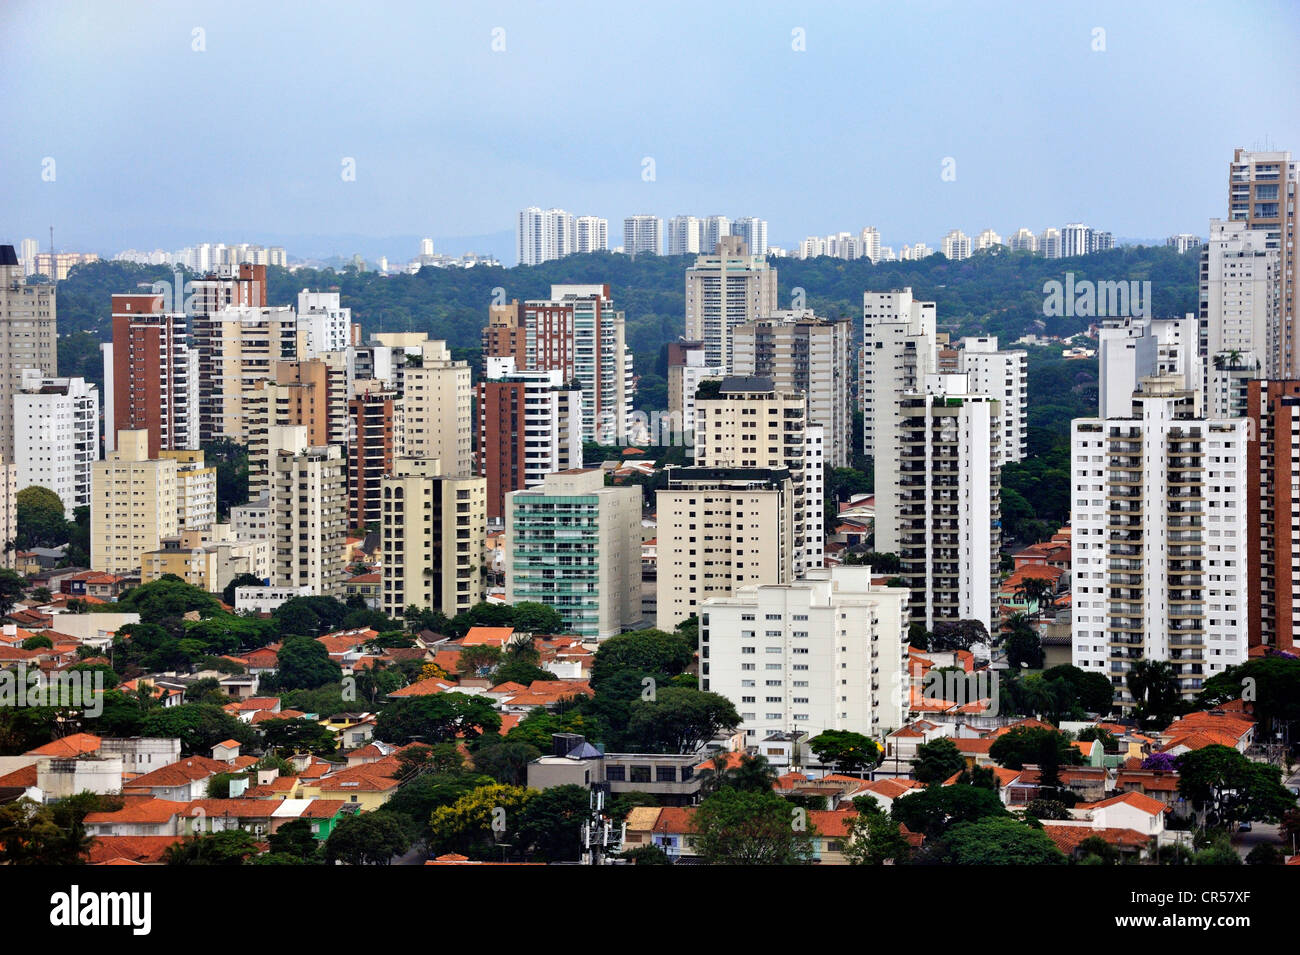 High-rise buildings, Sao Paulo, Brazil, South America - Stock Image